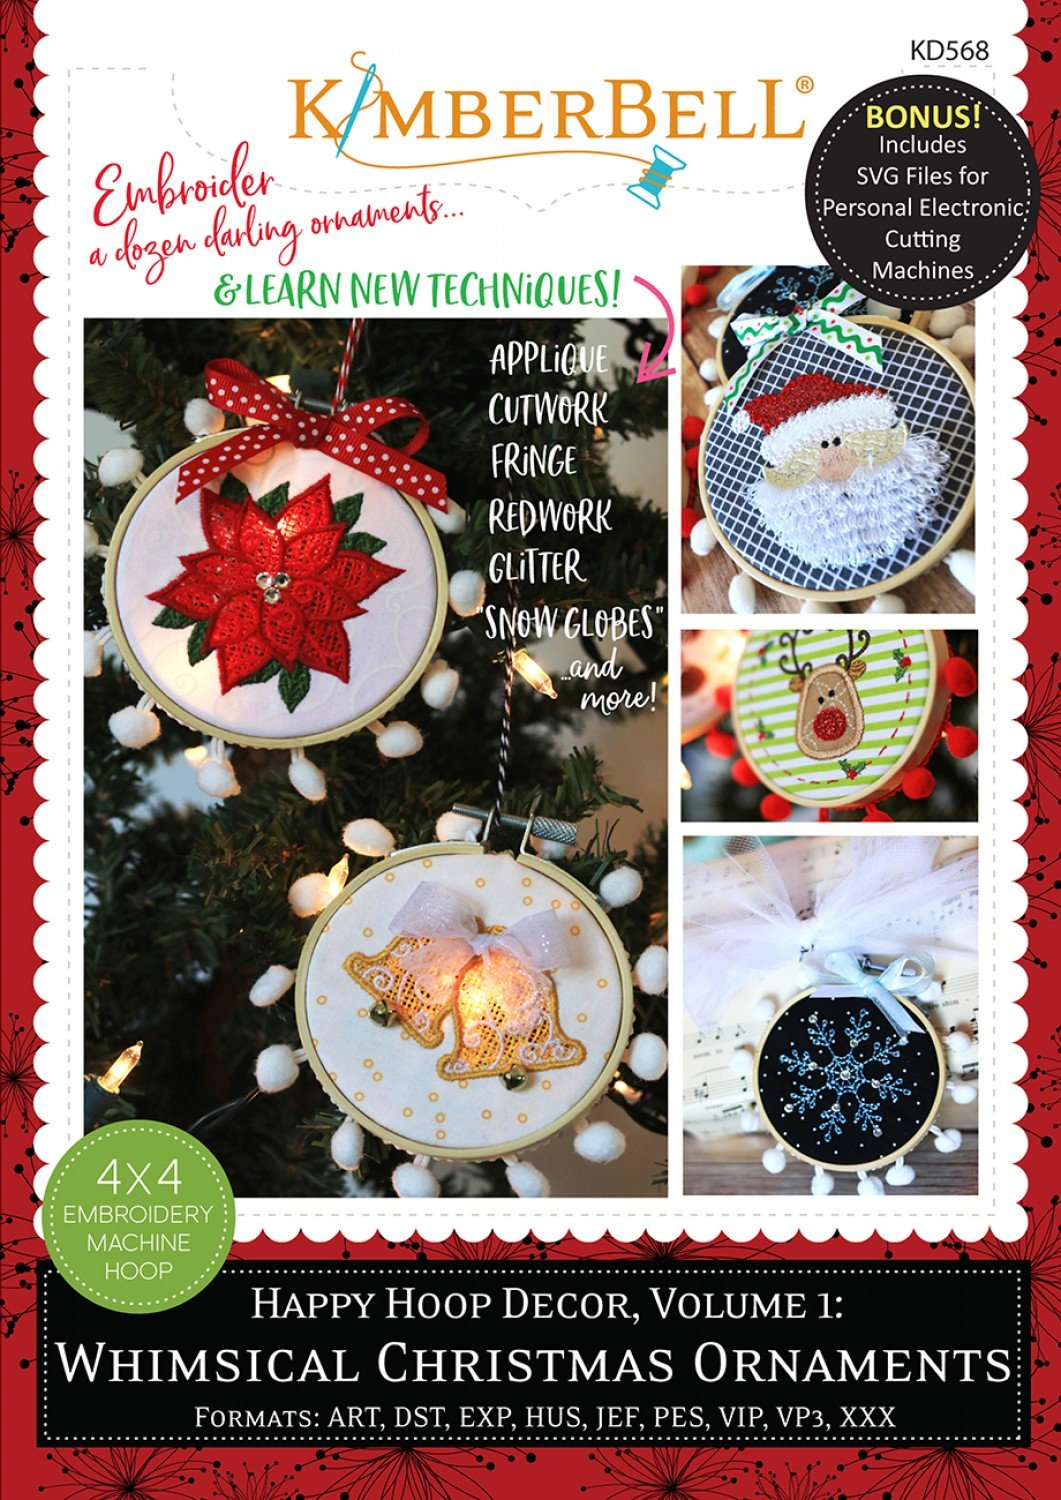 Happy Hoop Decor Volume 1 Whimsical Christmas Ornaments Machine Embroidery CD